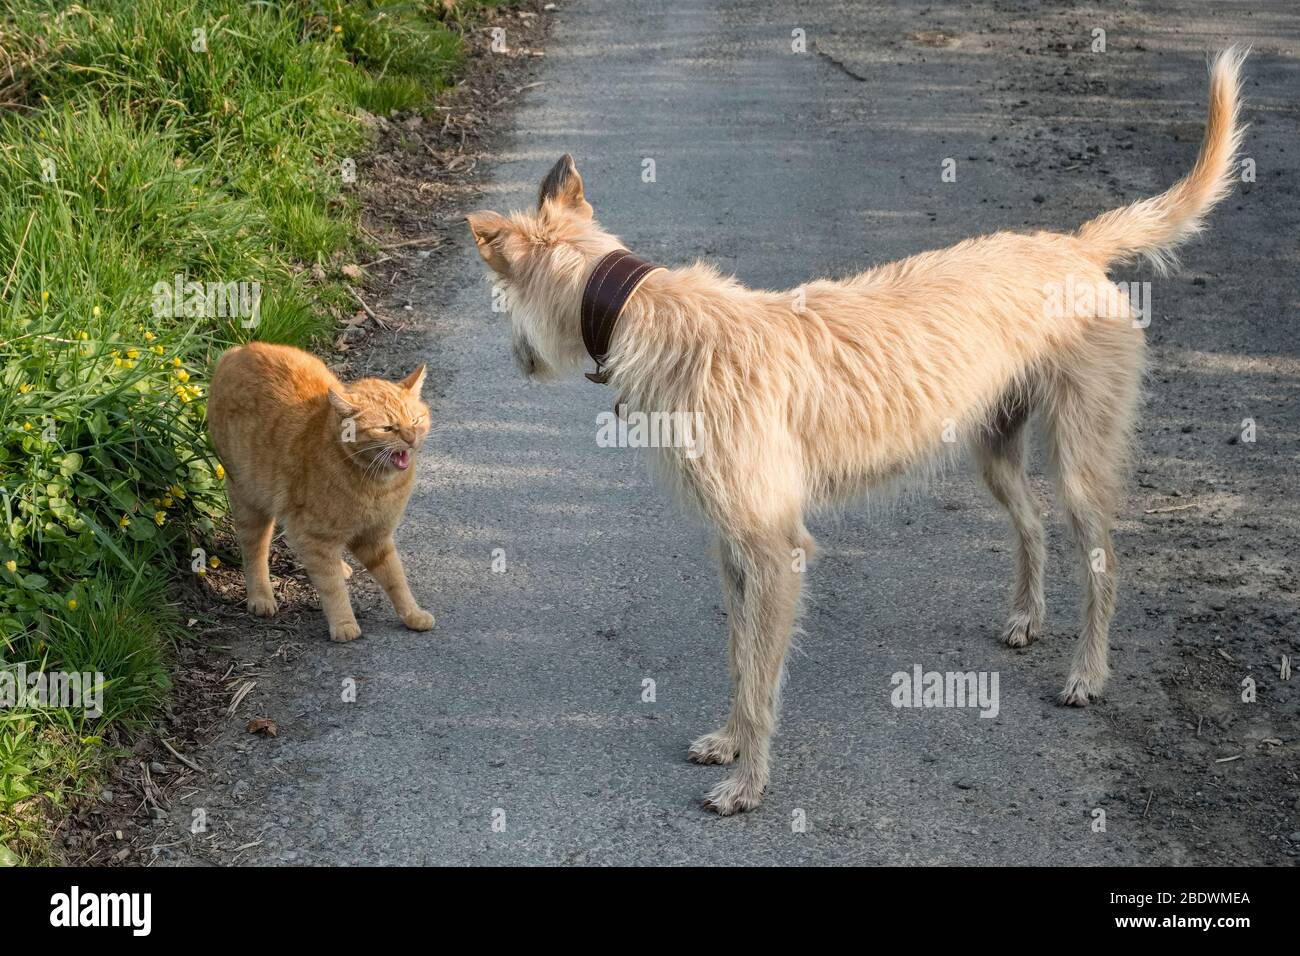 Social distancing among animals - a tailless Manx cat bares its teeth as it threatens an inquisitive lurcher dog that has come too close Stock Photo